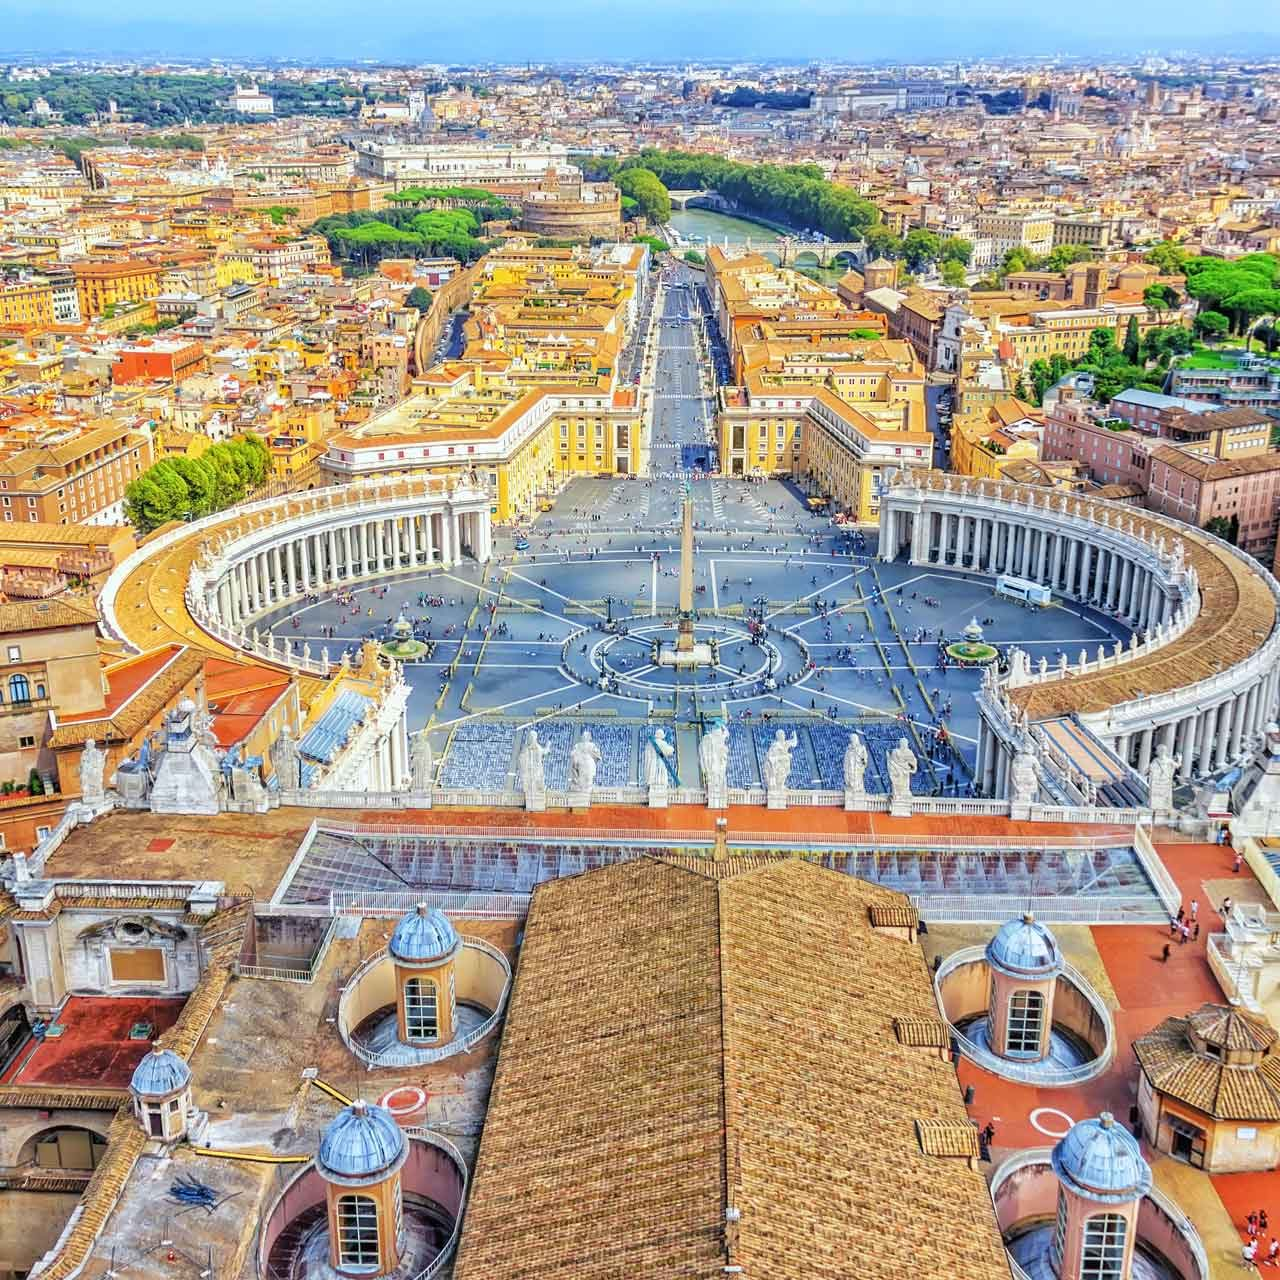 RomeTourTickets Group Tour of Vatican Museums Sistine Chapel and St Peters Basilica